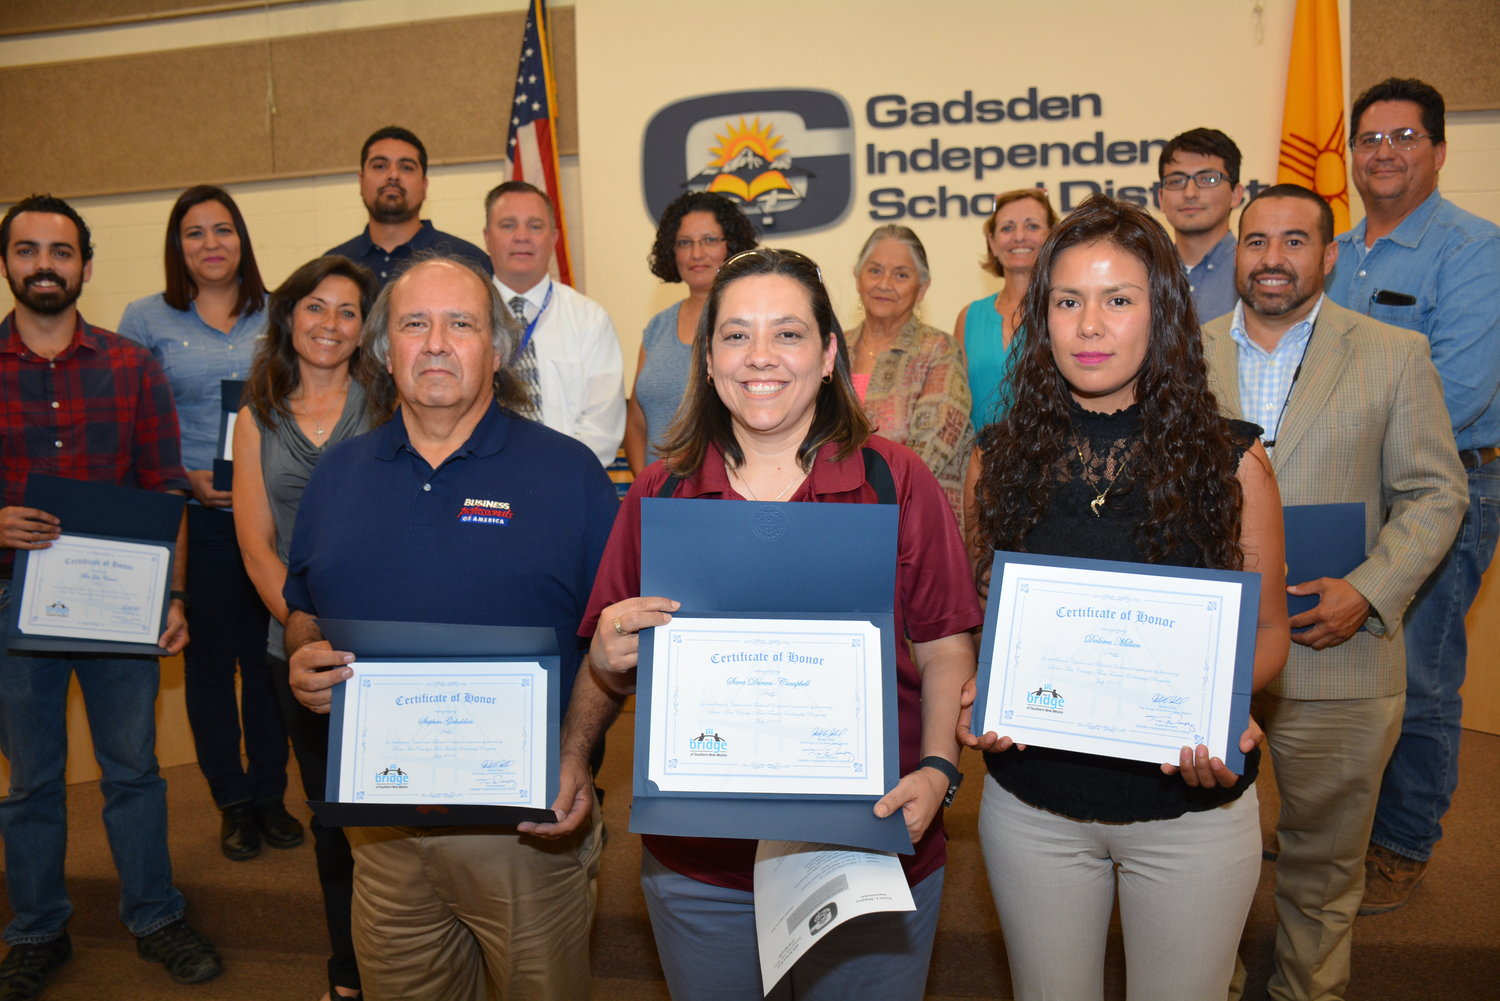 From left, Stephen Gabaldon, Sara Duran-Campbell, and Dolores Millan were honored by members of the GISD school board as the first teacher externs in Doña Ana County. They are joined by representatives from El Paso Electric, Film Las Cruces, Jacobs Technology and The Bridge of Southern New Mexico, who provided the work-based experiences and stipends for the teachers.